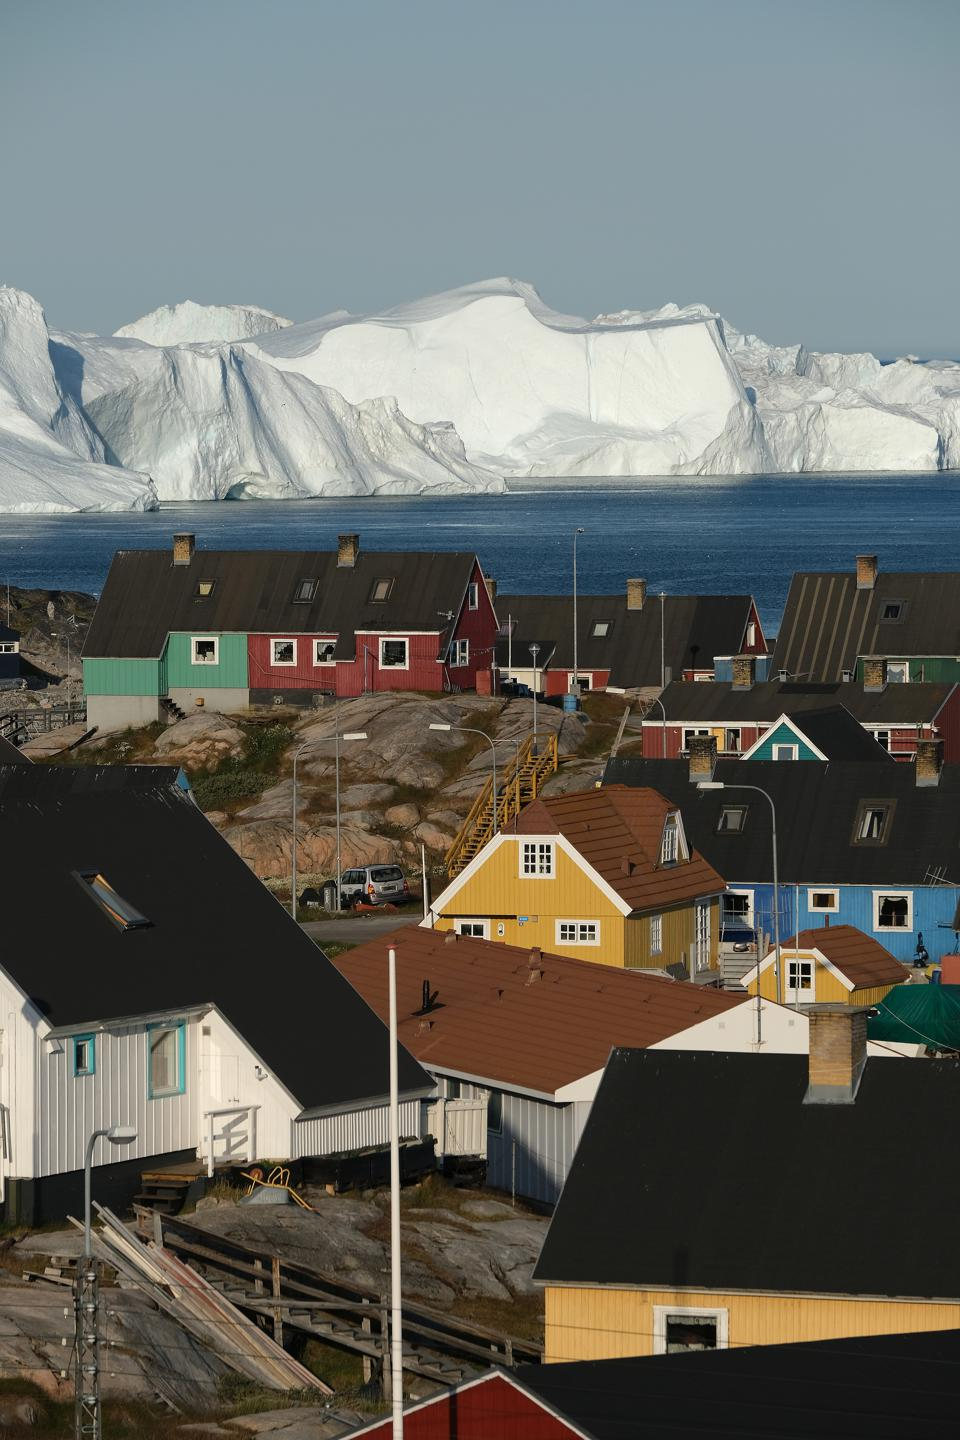 Greenland: Every Day Life And General Imagery